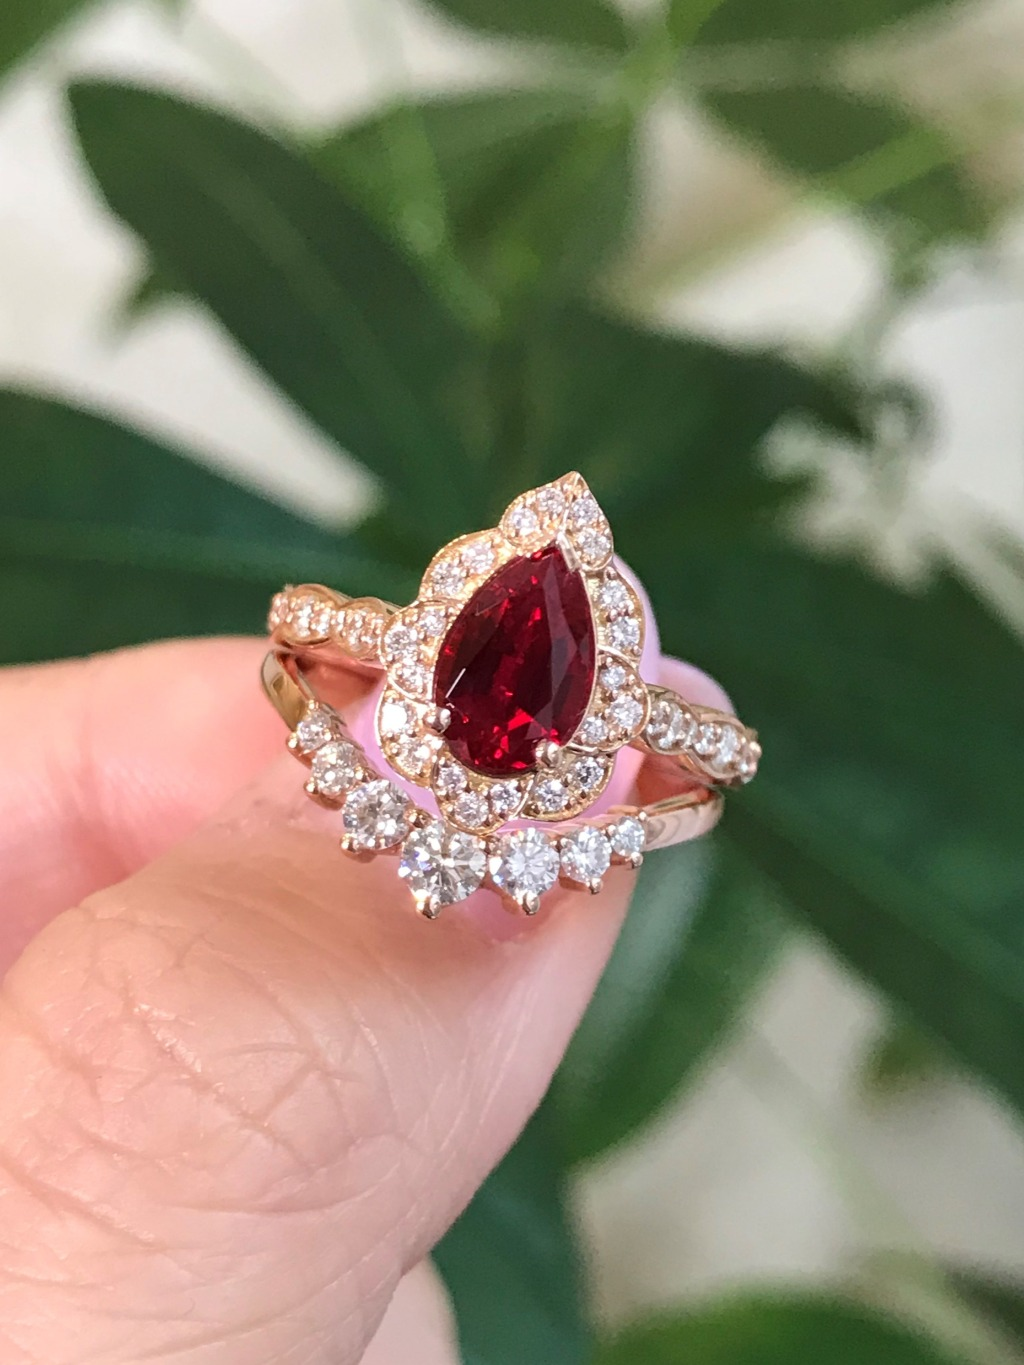 Our most popular Vintage Floral Collection features many center stones, like this Pear Ruby Engagement Ring. This is our Vintage Floral